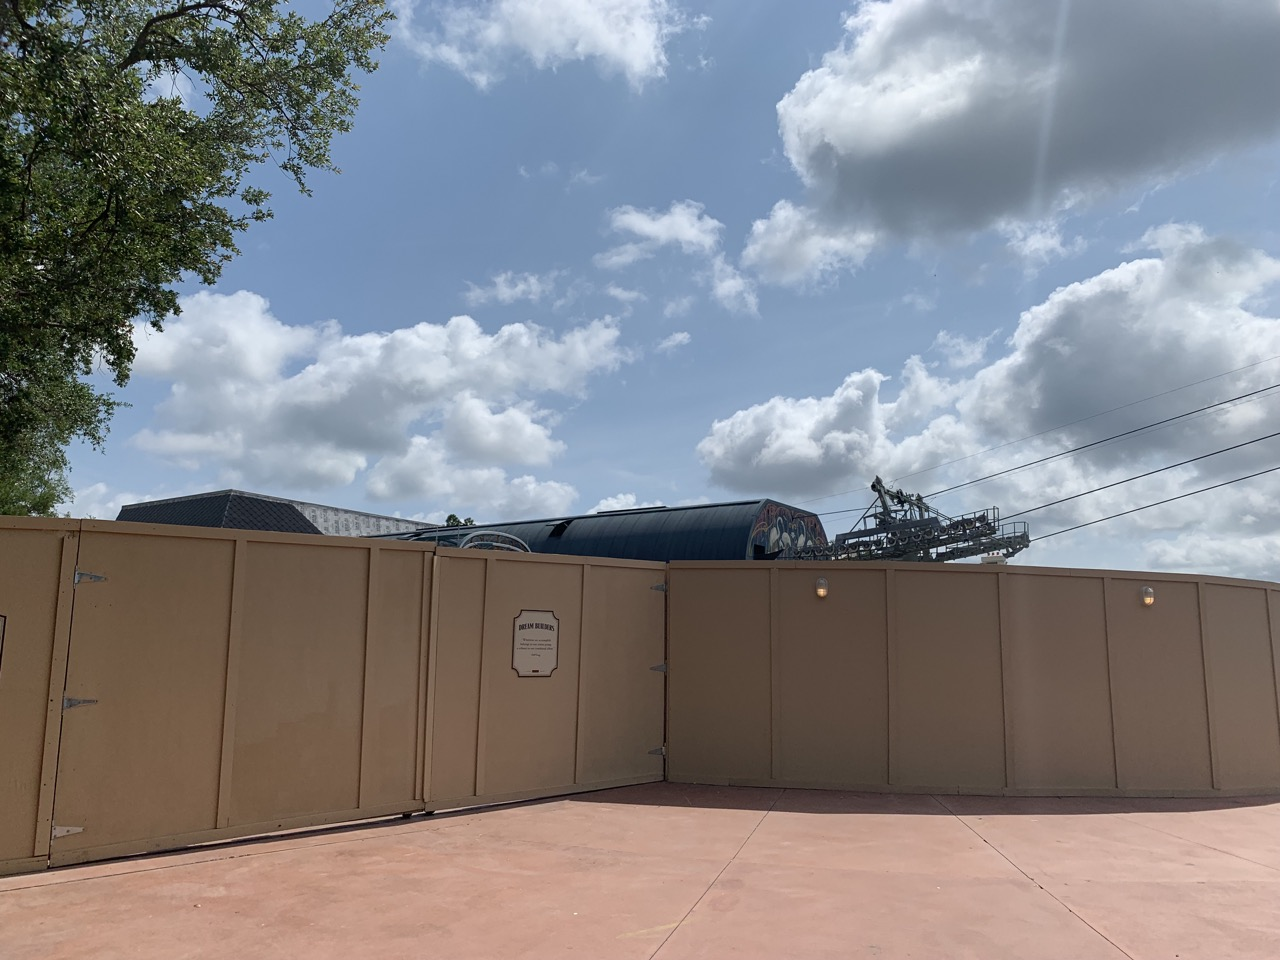 disney world trip report early summer 2019 day six skyliner 2.jpeg